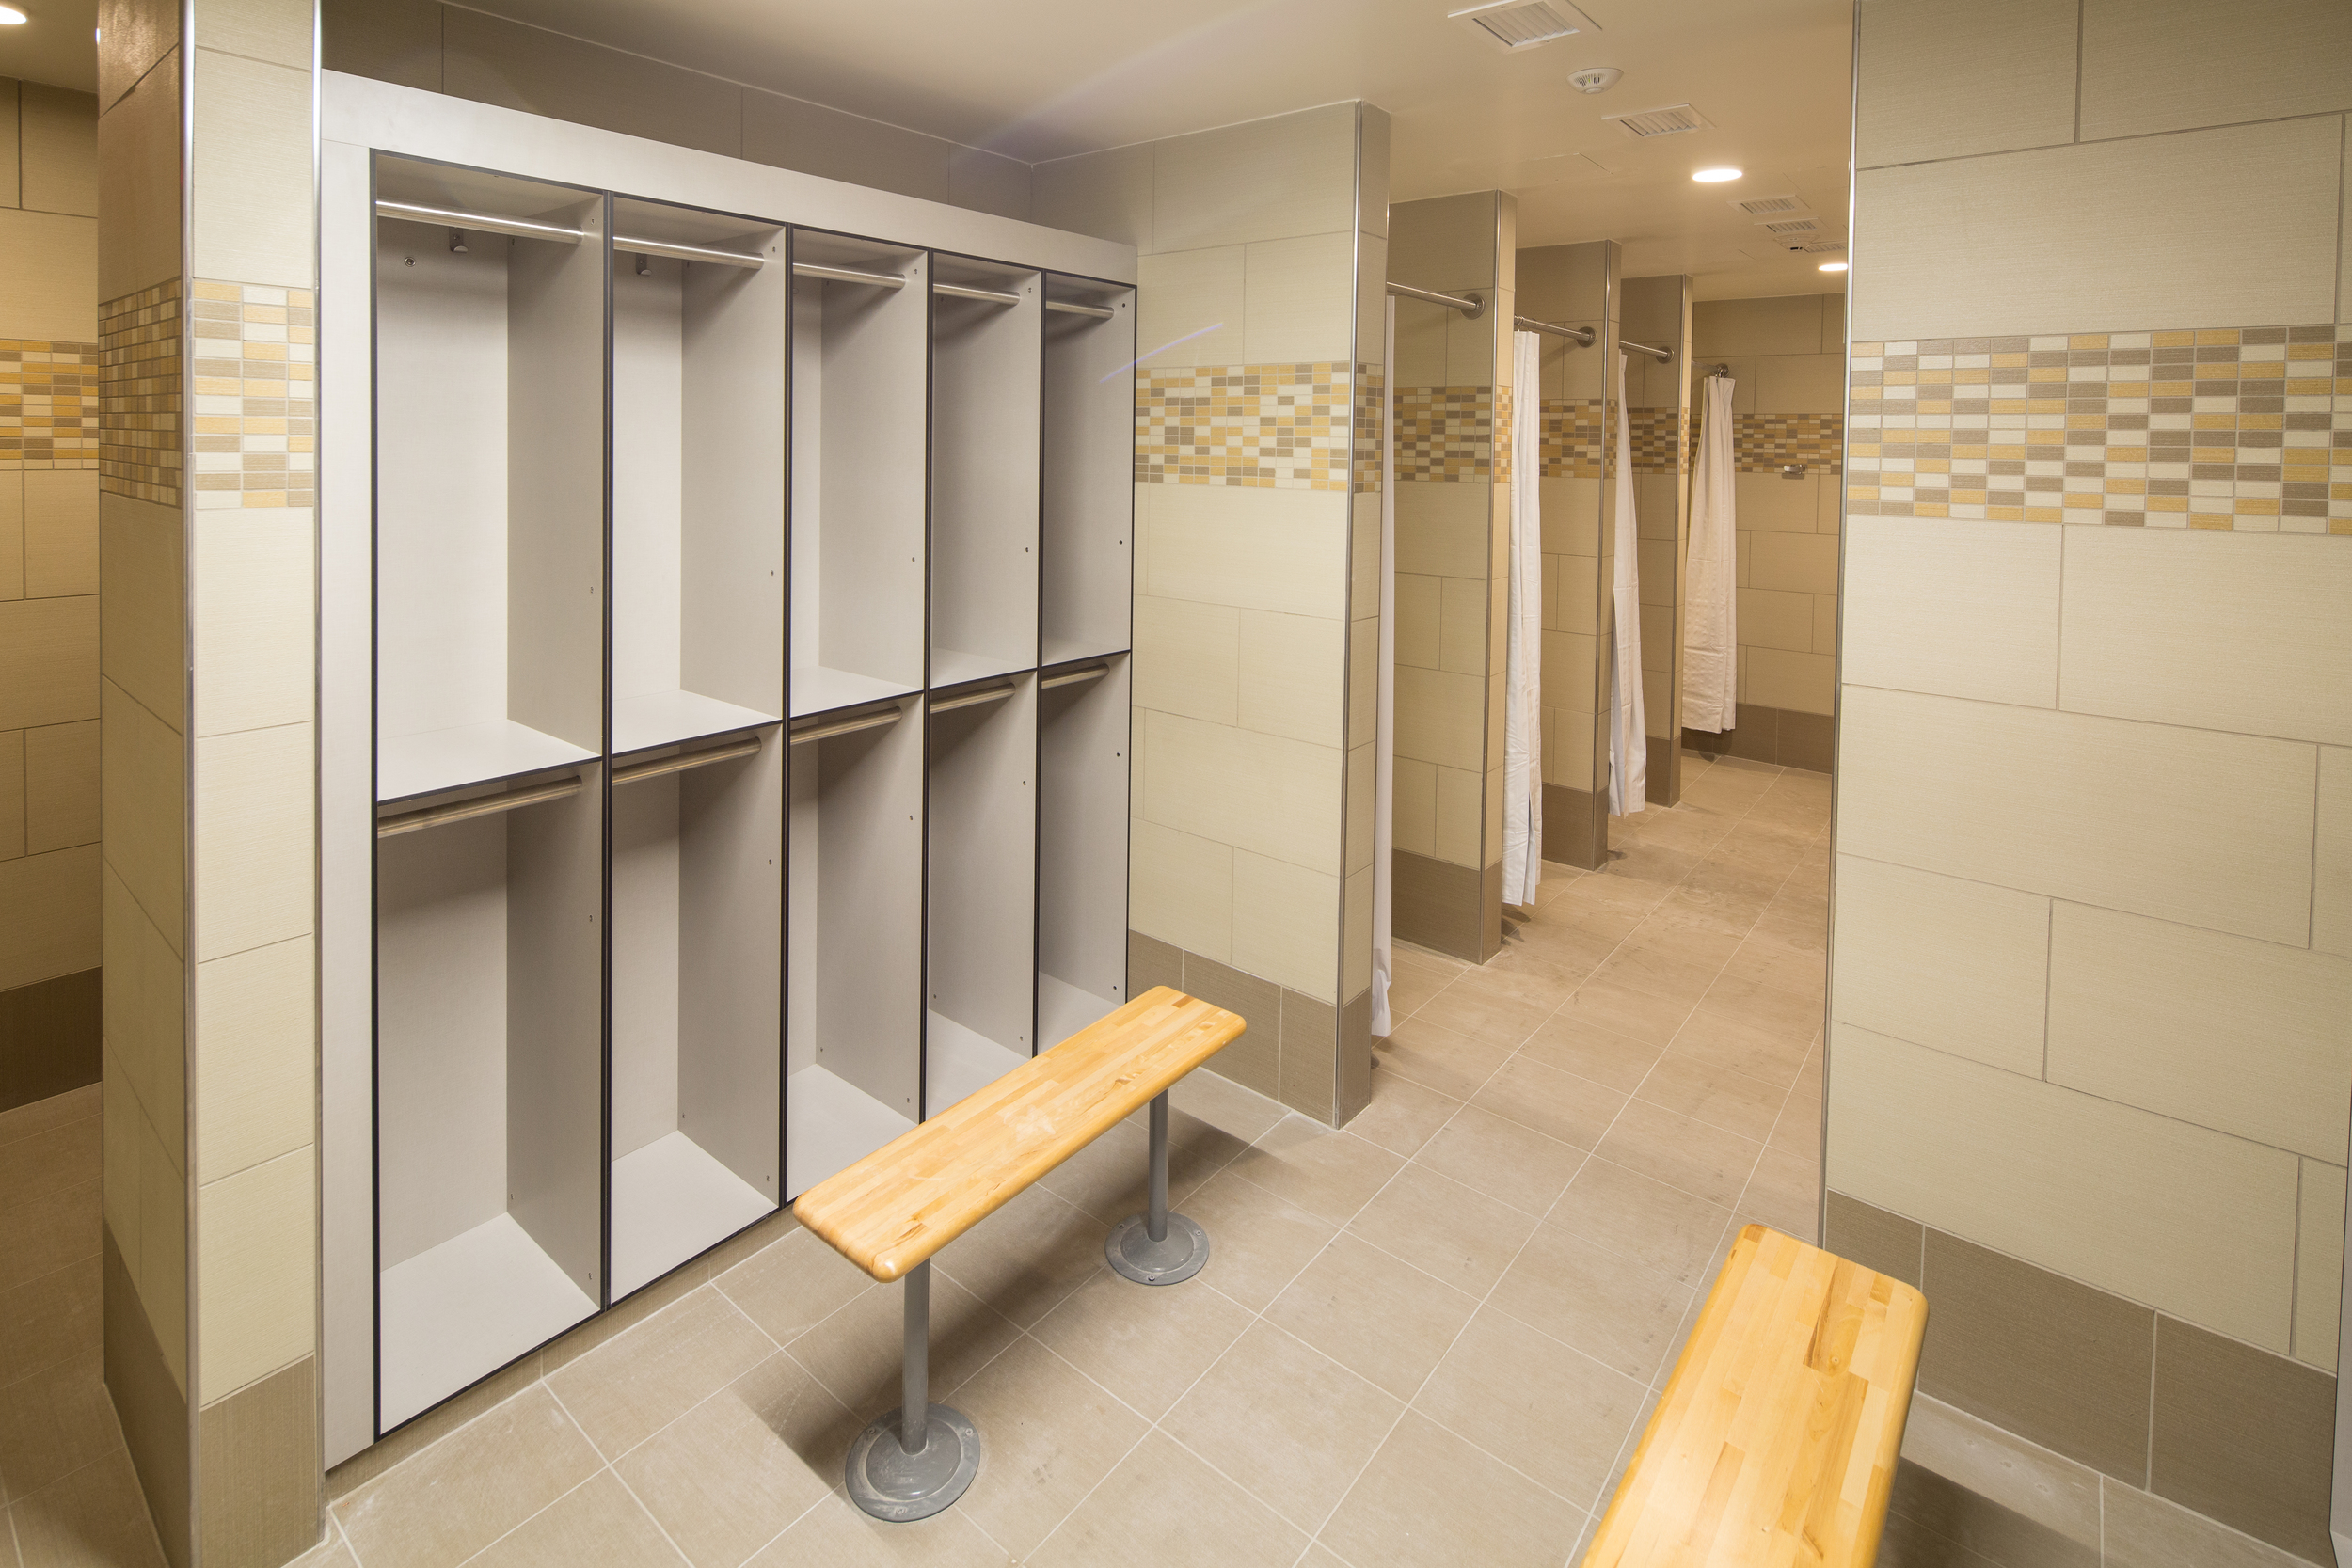 VM 27-15 Kokolakis_West Point_MacShort_bathrooms_0020.jpg